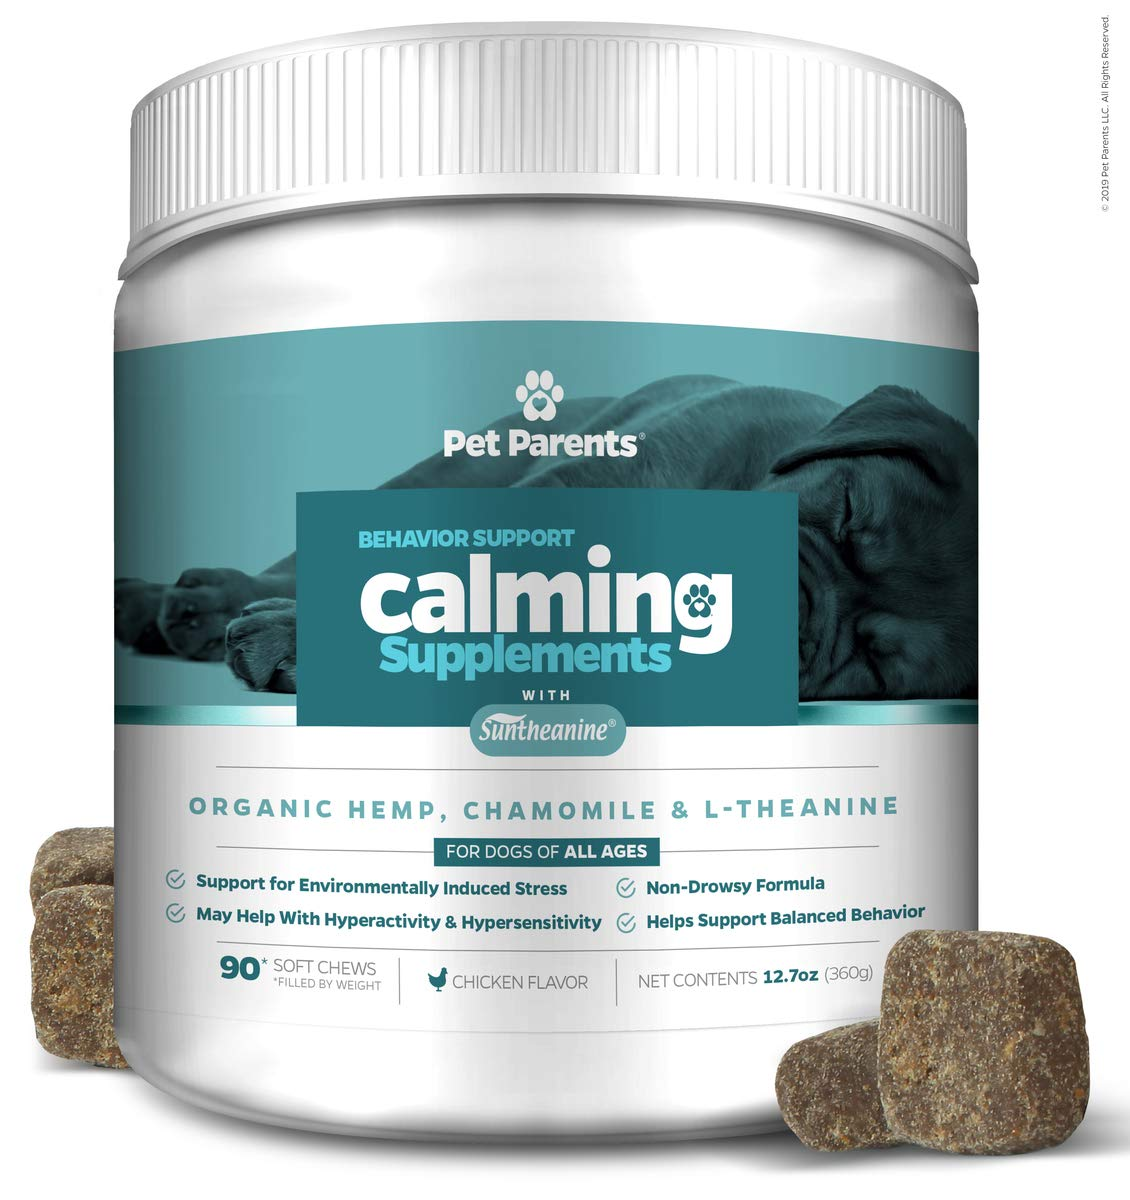 Pet Parents USA Dog Calming Treats 4g 90c + Anxiety Relief for Dogs - Organic Hemp for Dogs, Suntheanine + Nervous Dog, Pet Anxiety, Hyper Dog + Calming Treats for Dogs, Dog Anxiety Treats by Pet Parents